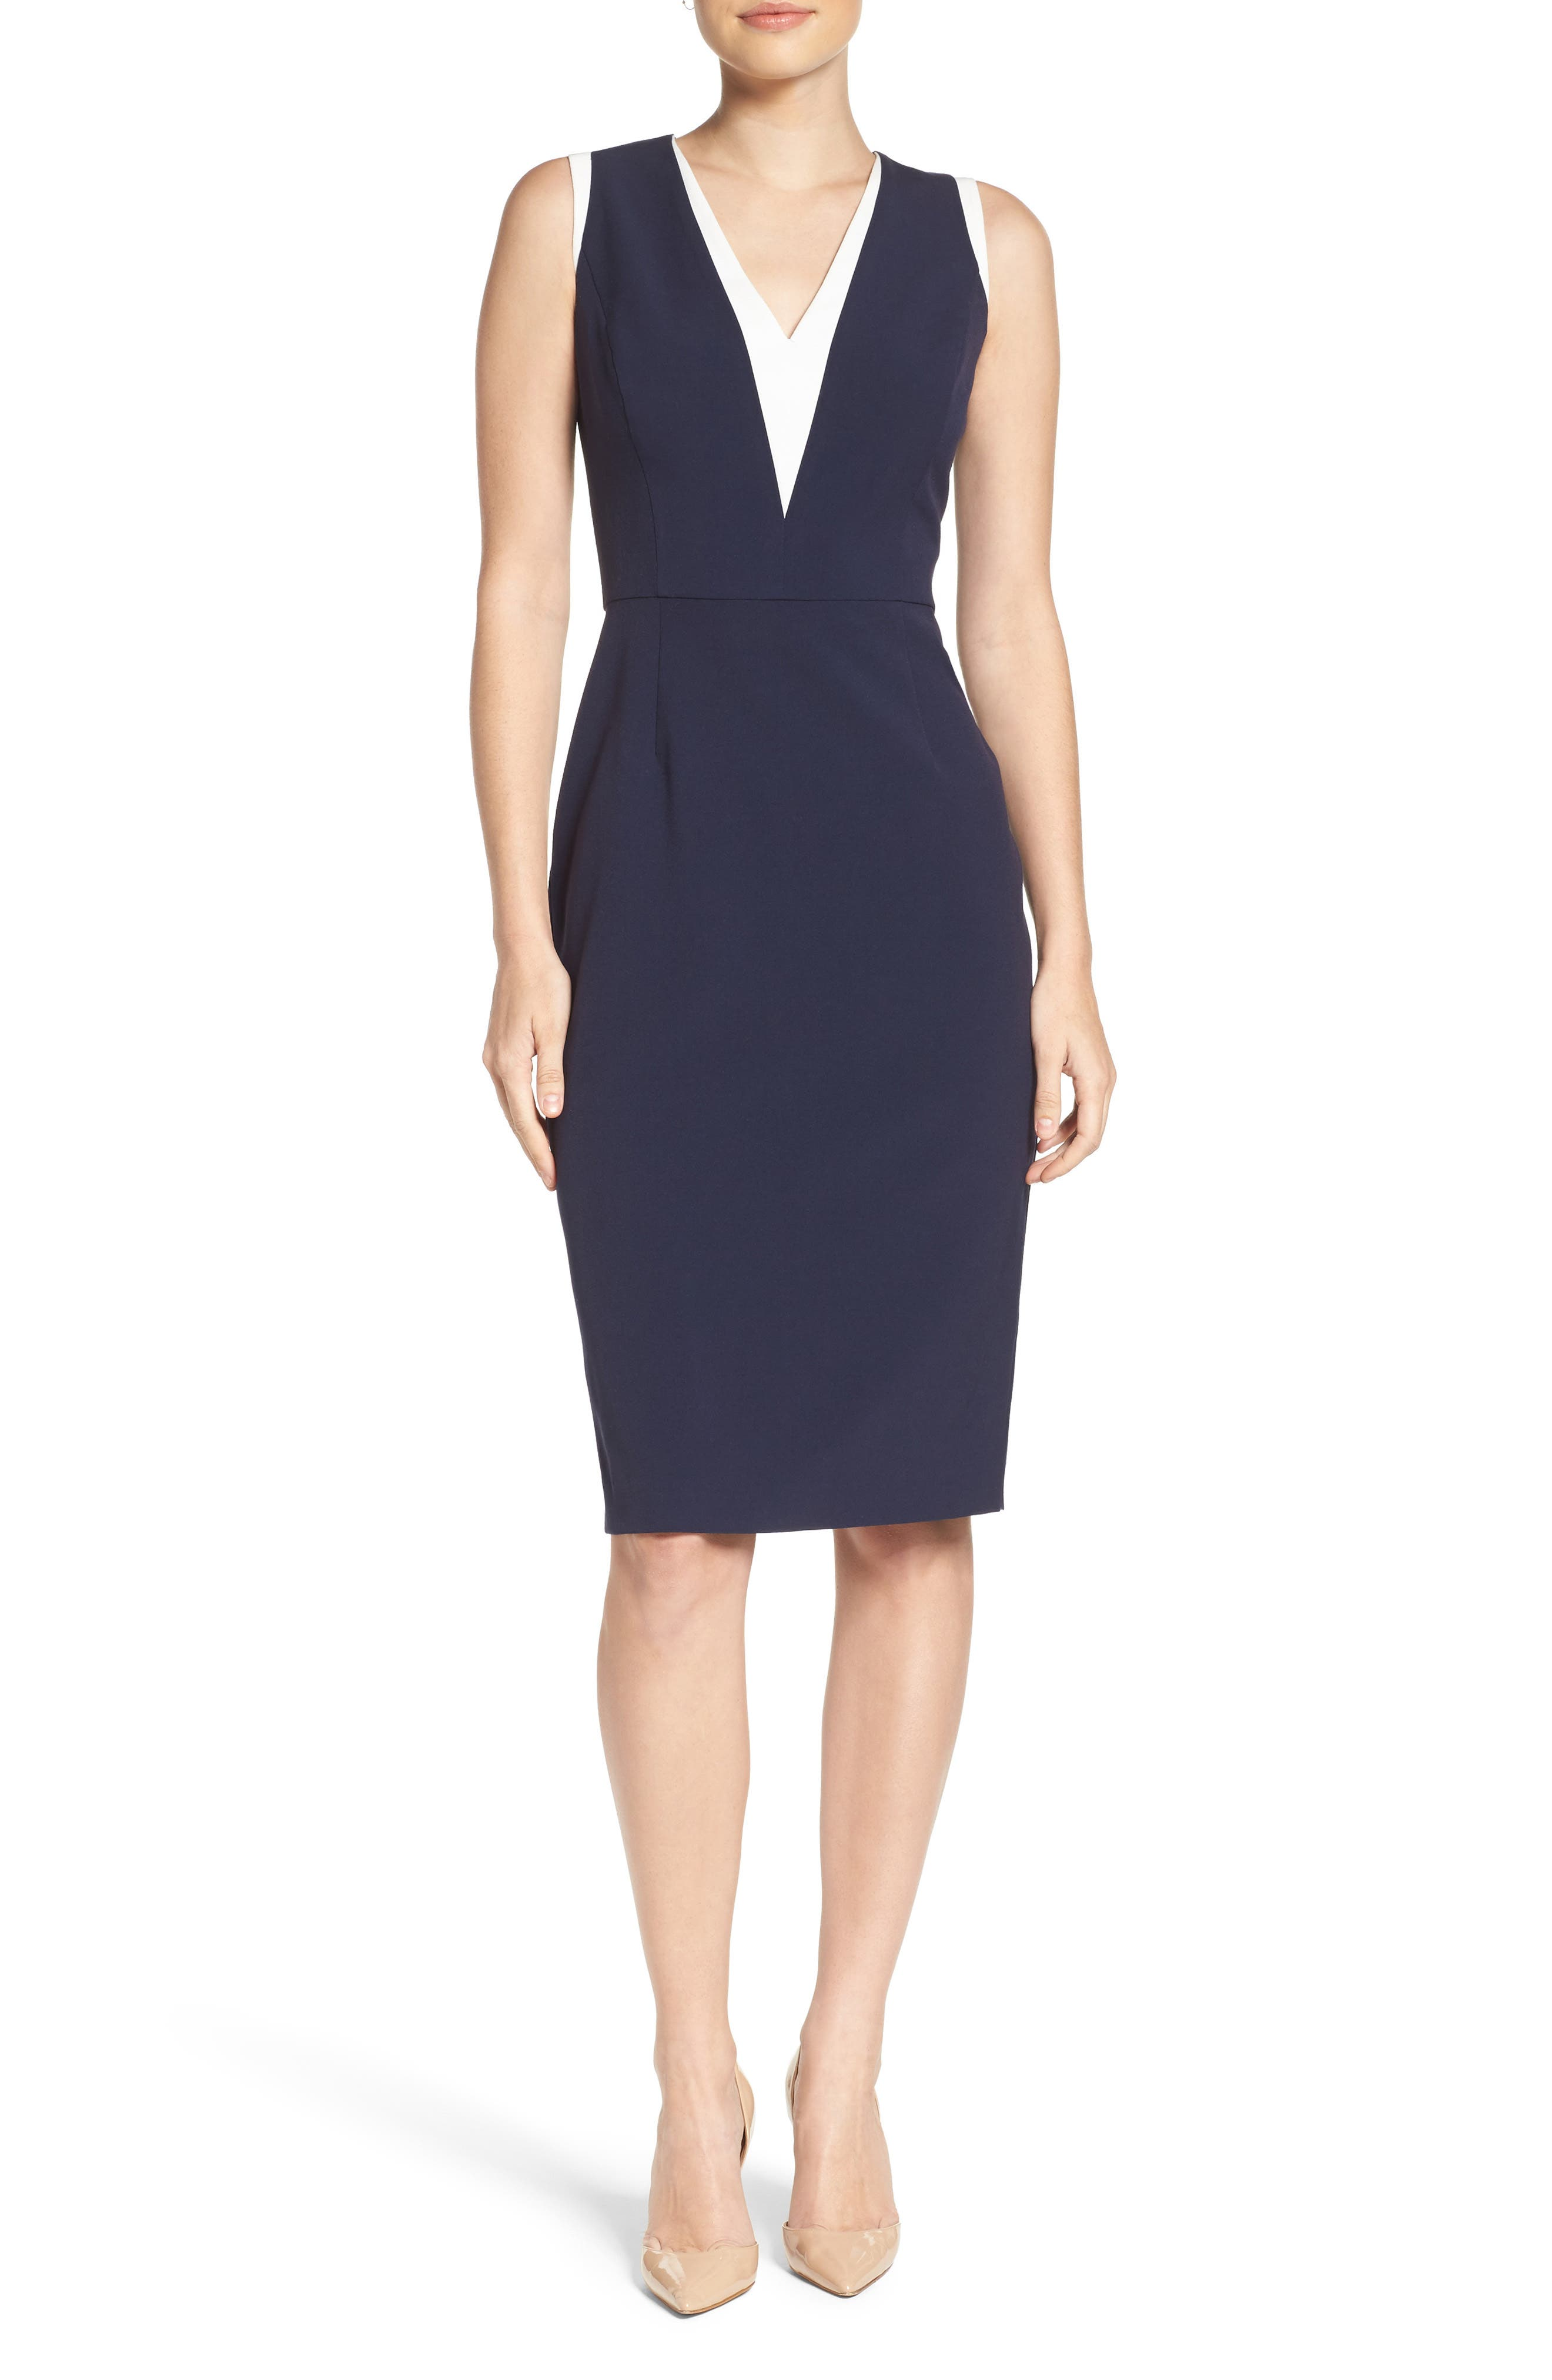 Alternate Image 1 Selected - Vince Camuto Stretch Sheath Dress